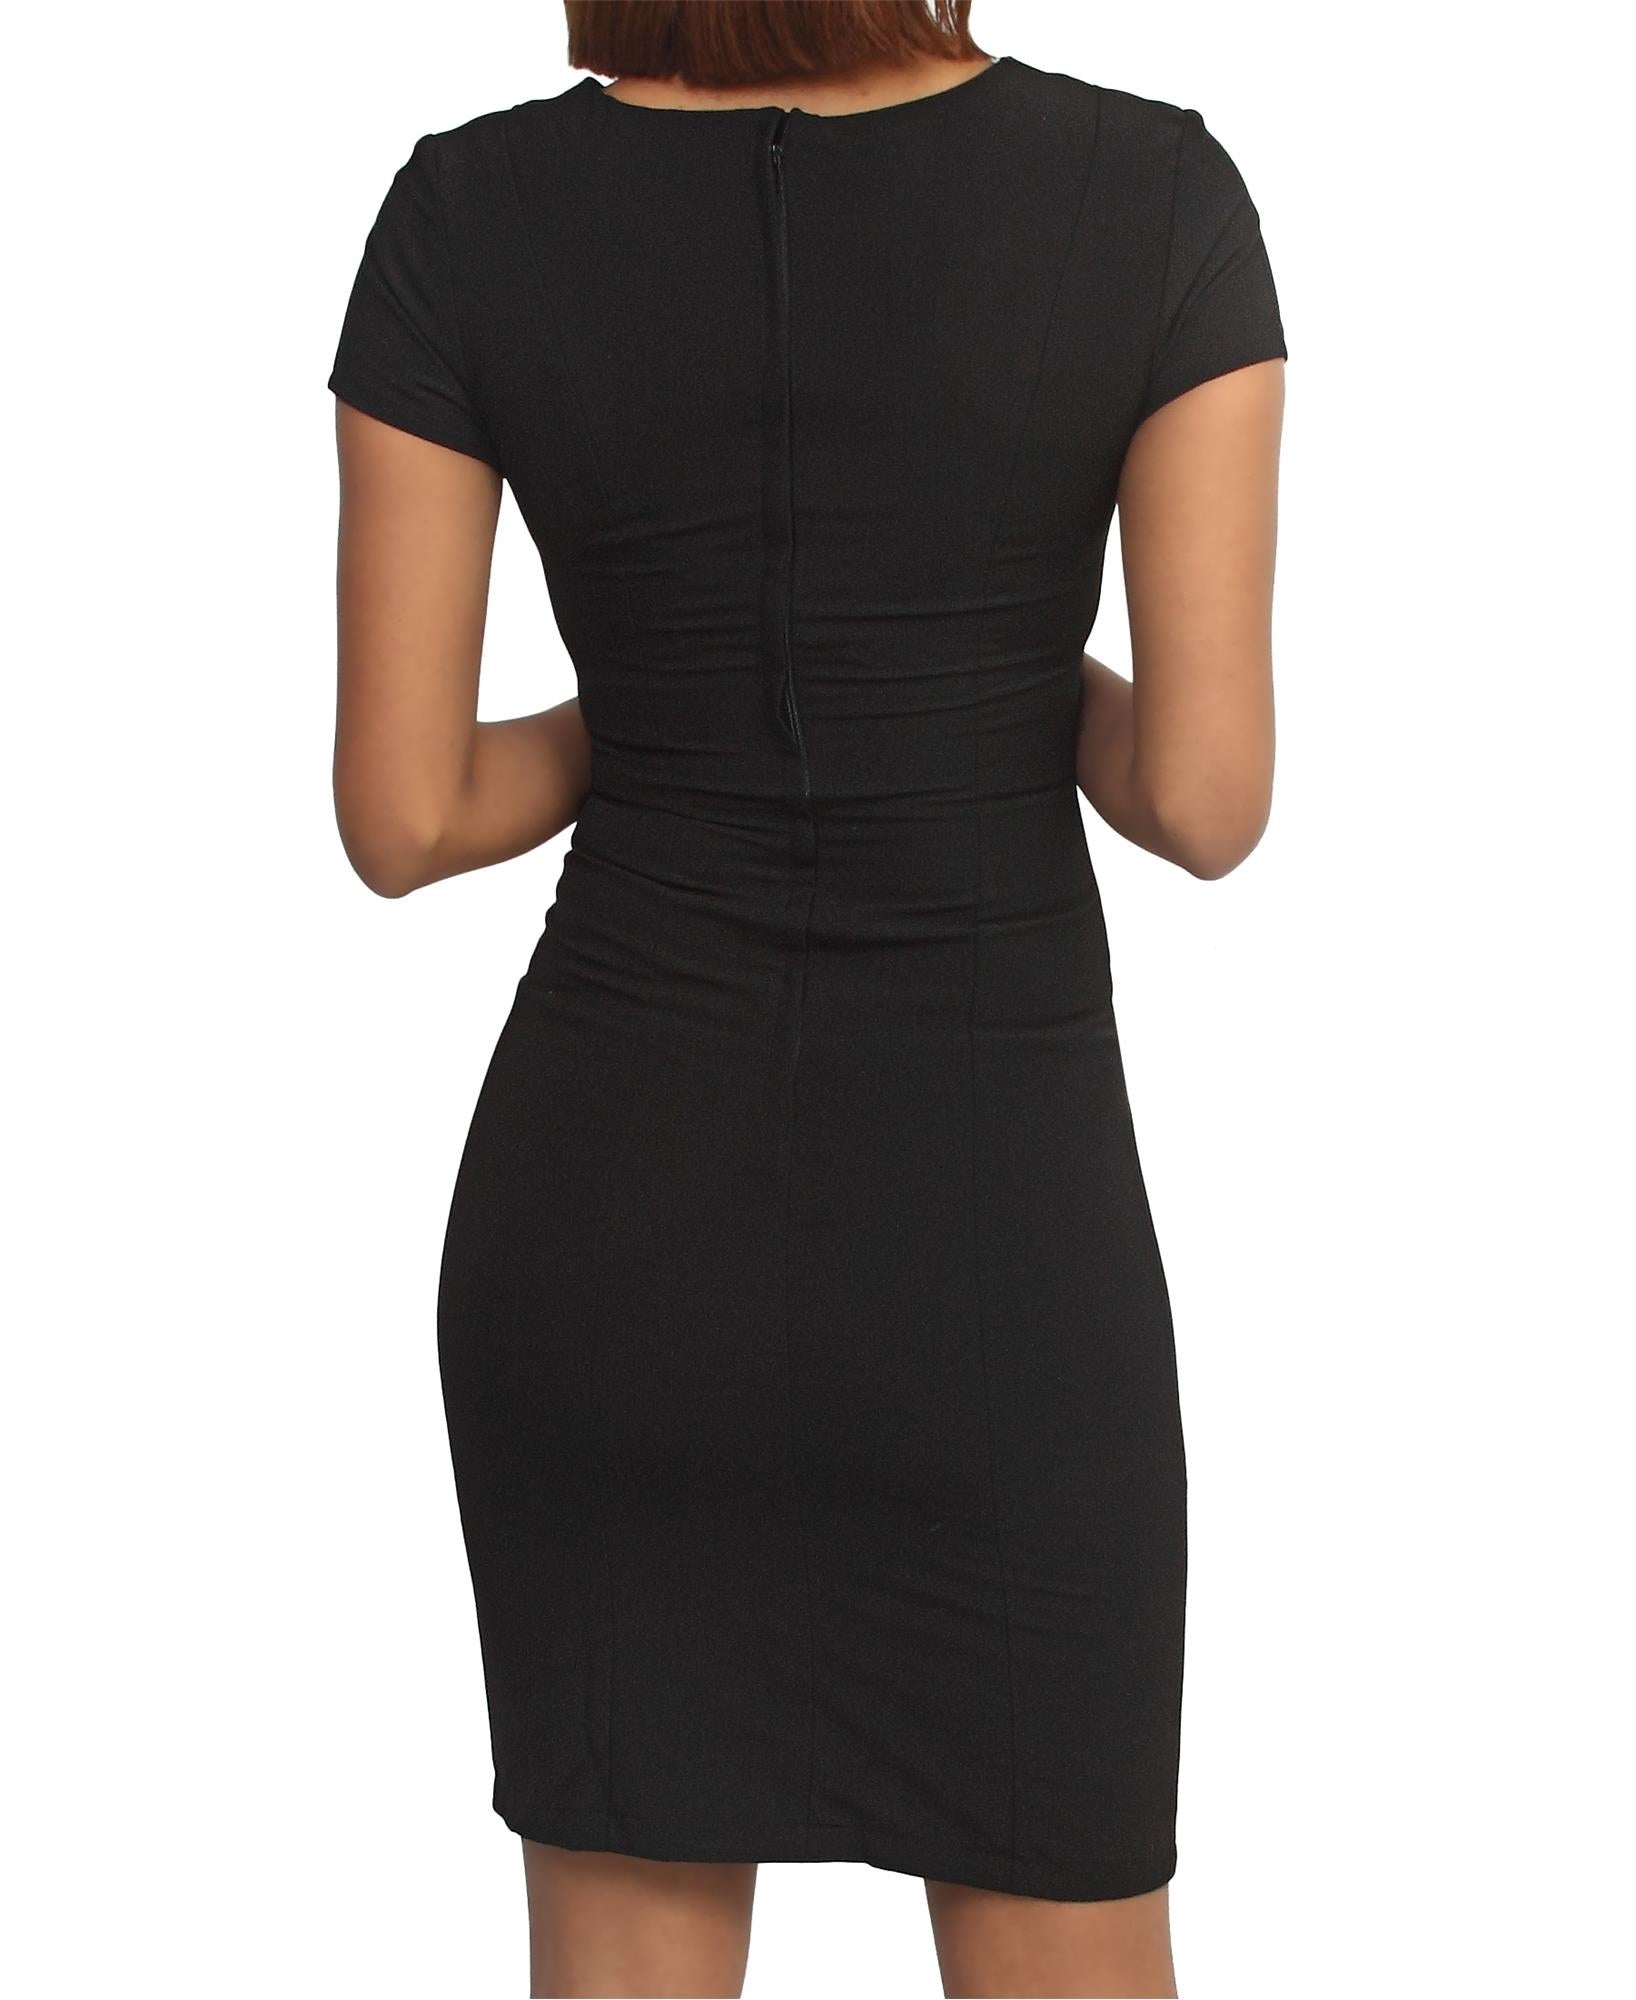 Formal Dress - Black